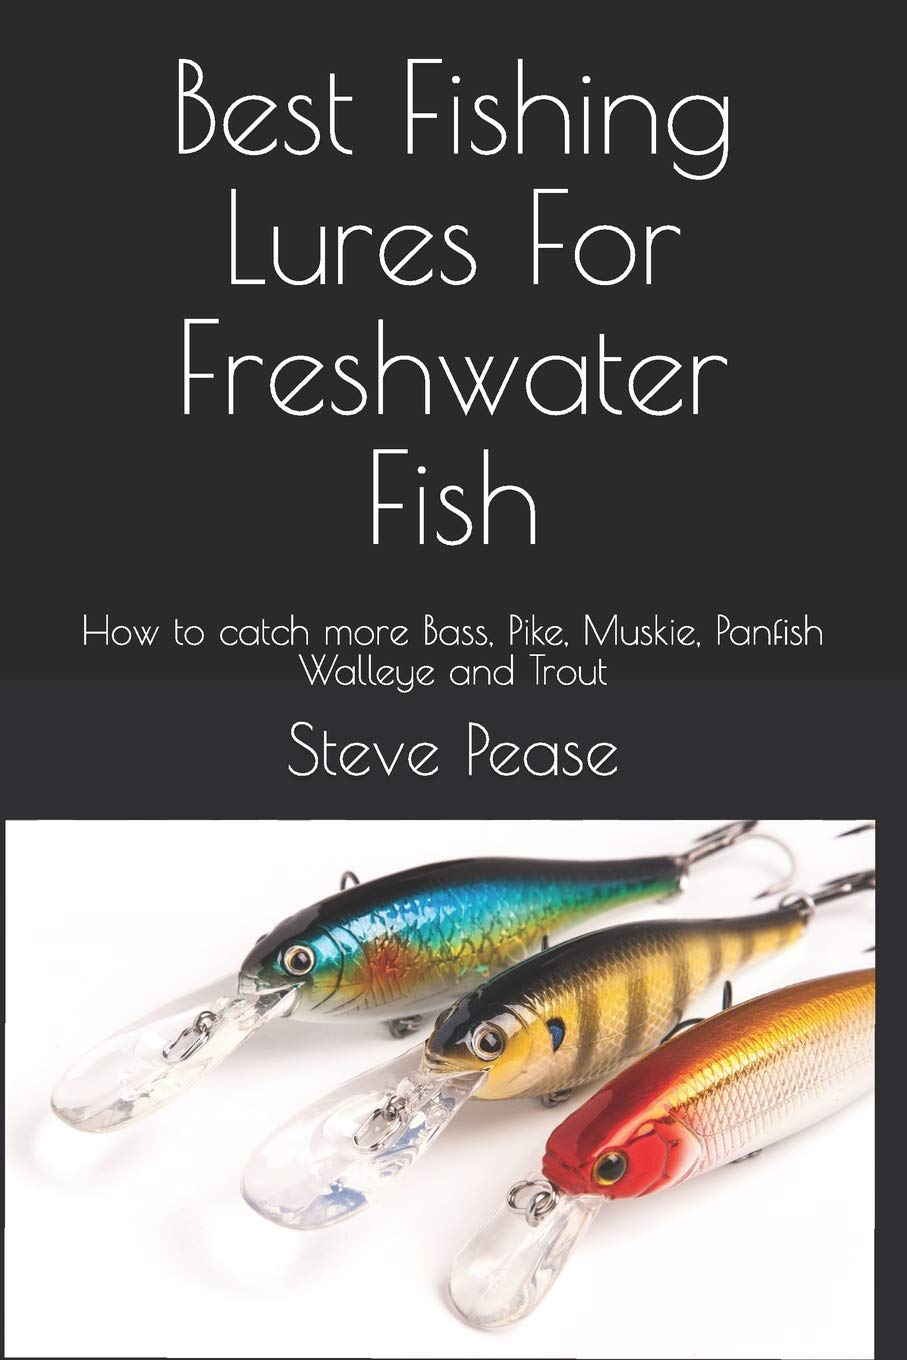 Best Fishing Lures For Freshwater Fish: How to catch more Bass